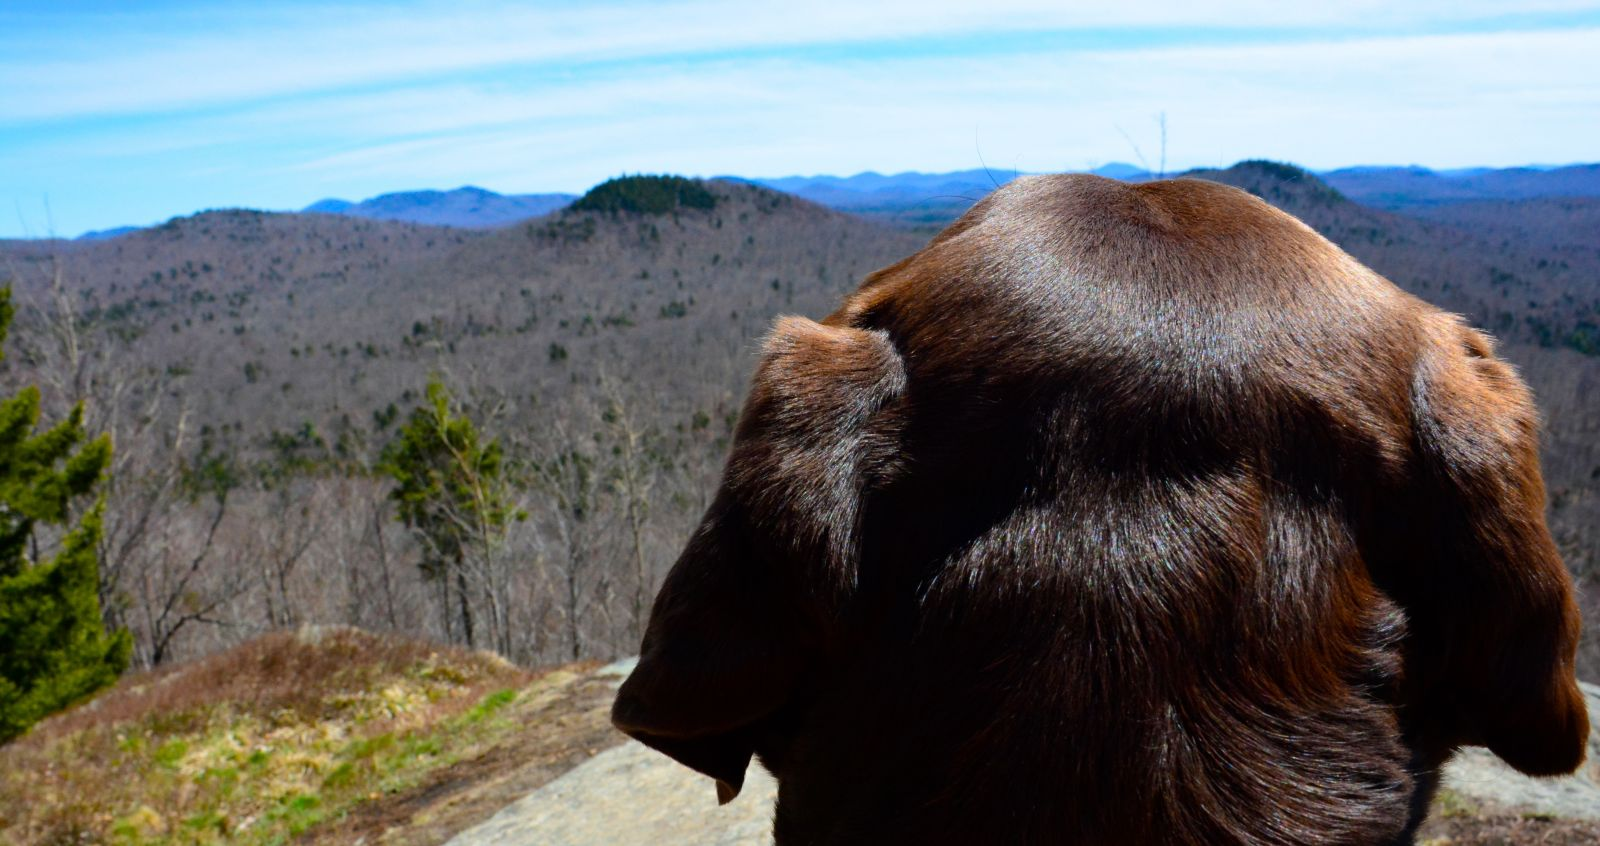 A dog's eye view from the top of Goodman Mountain.